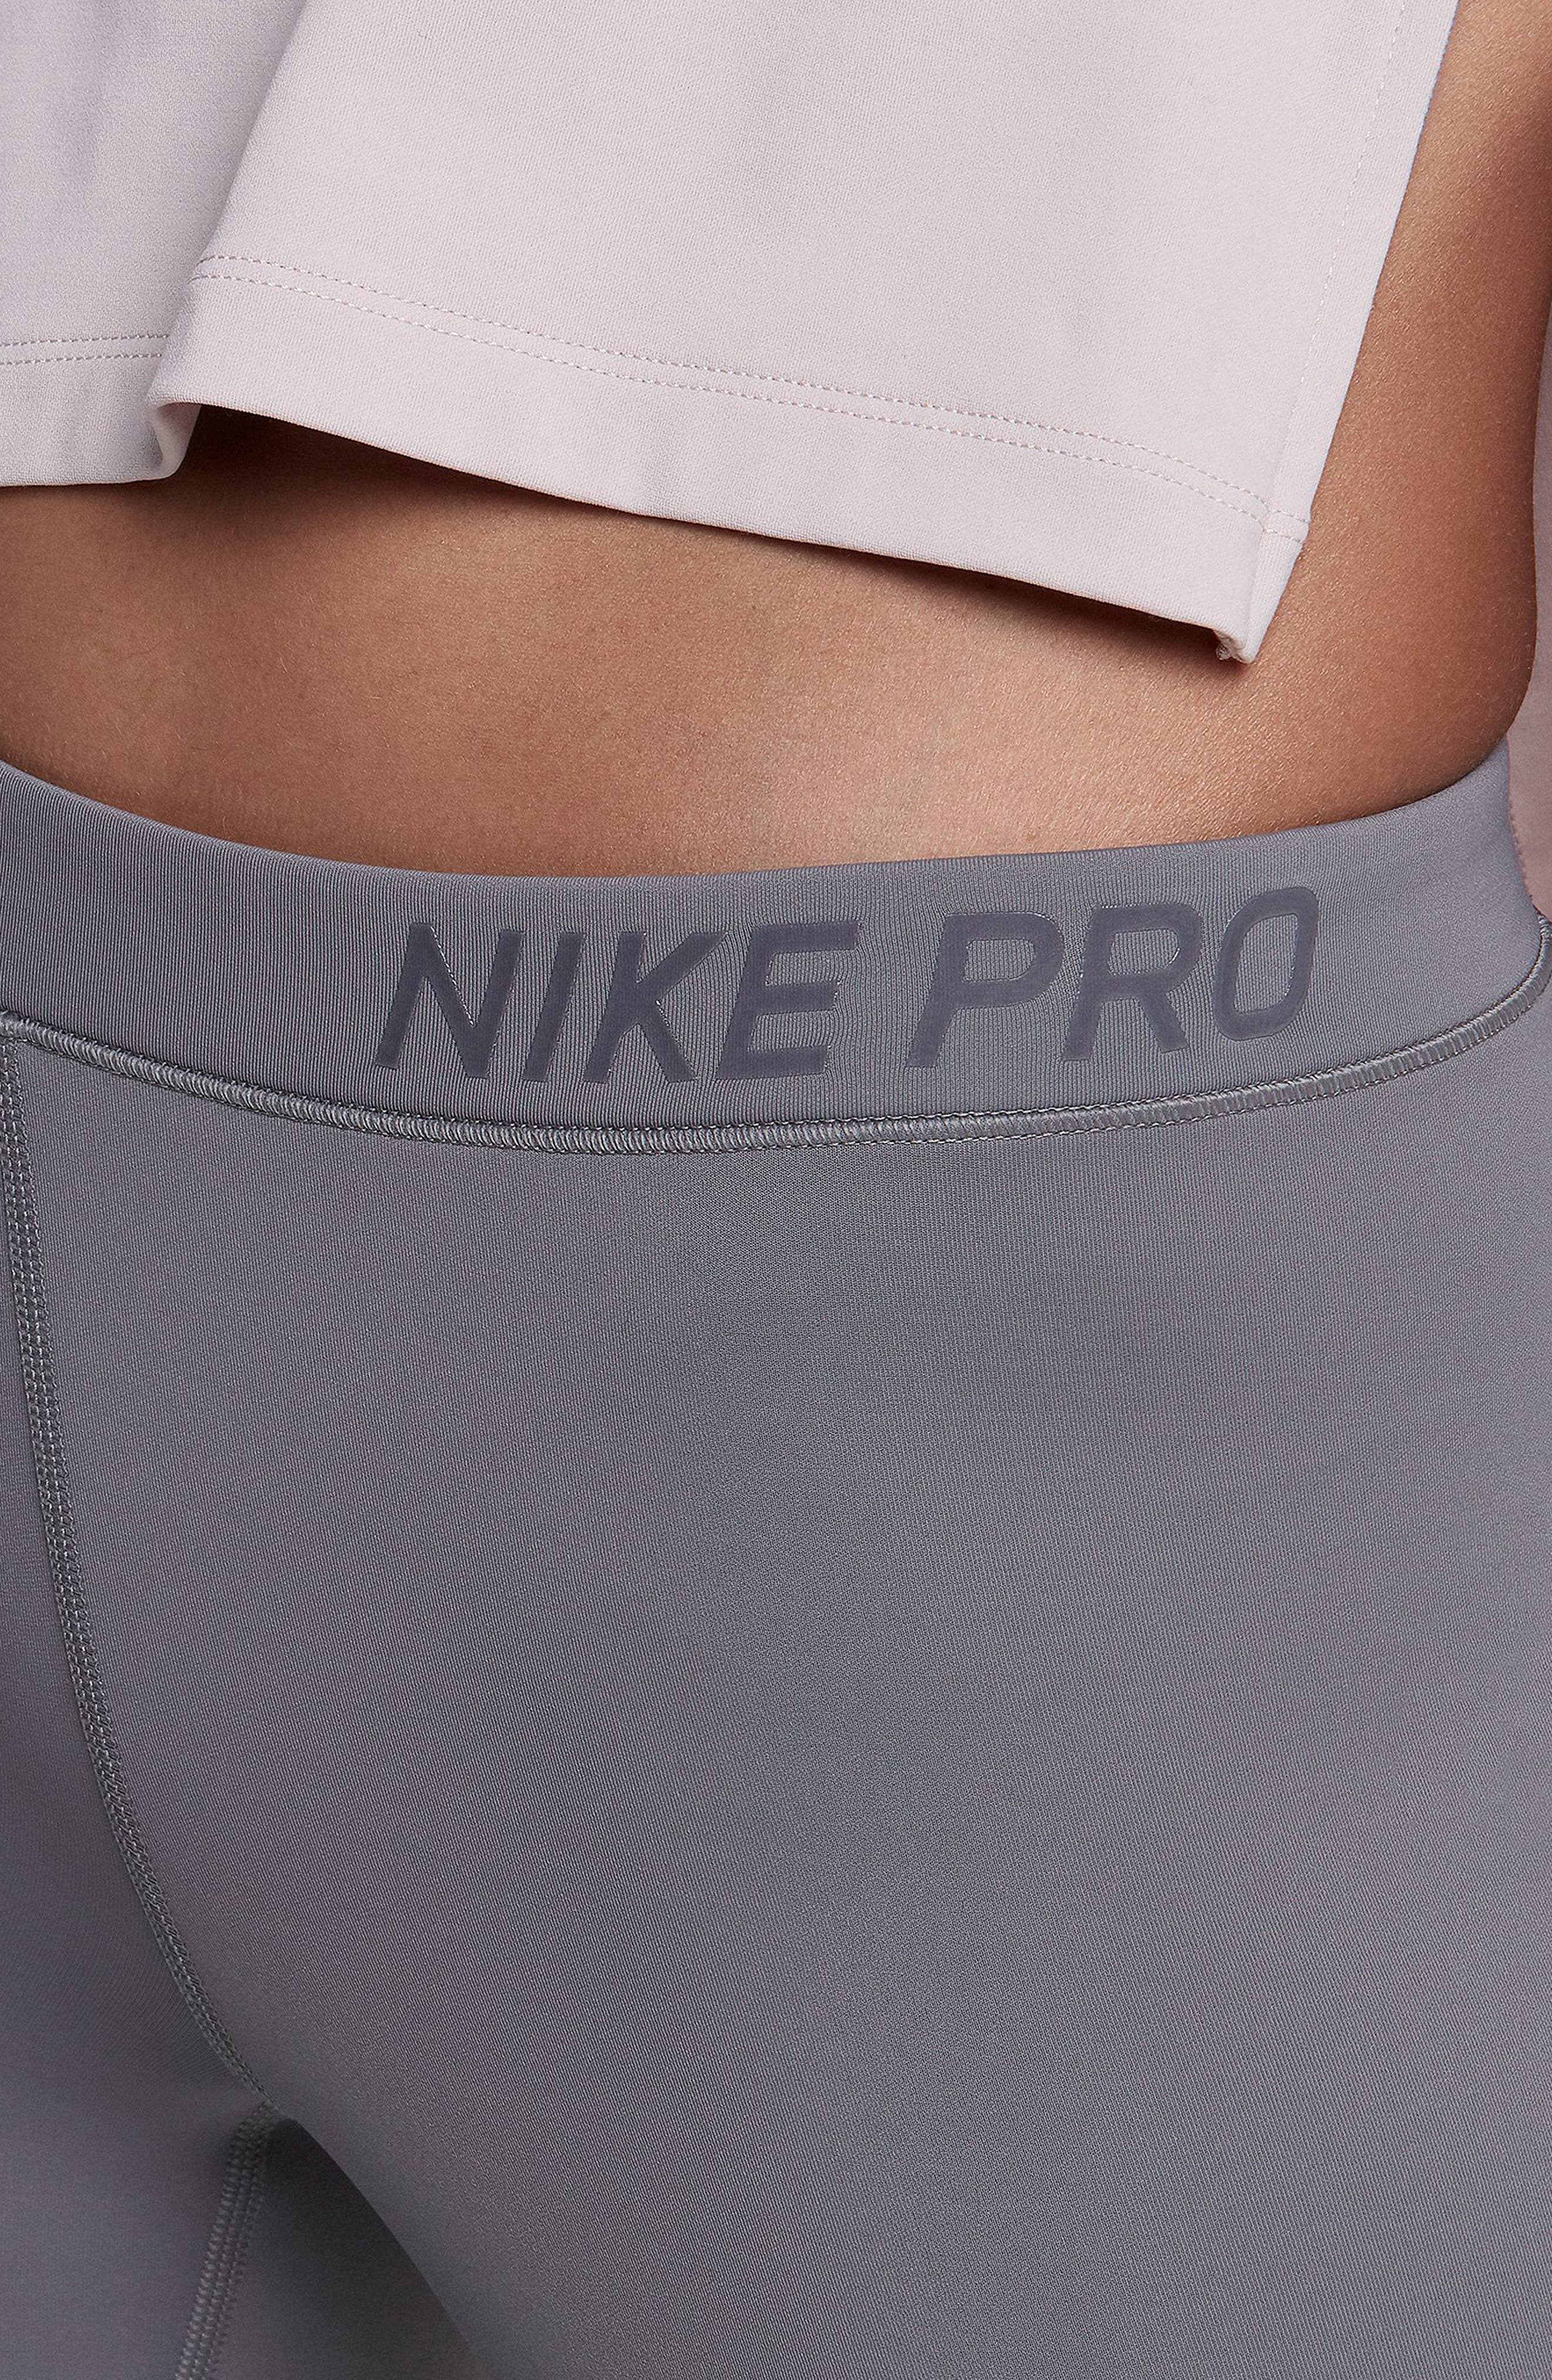 NikeLab NK One Tights,                             Alternate thumbnail 8, color,